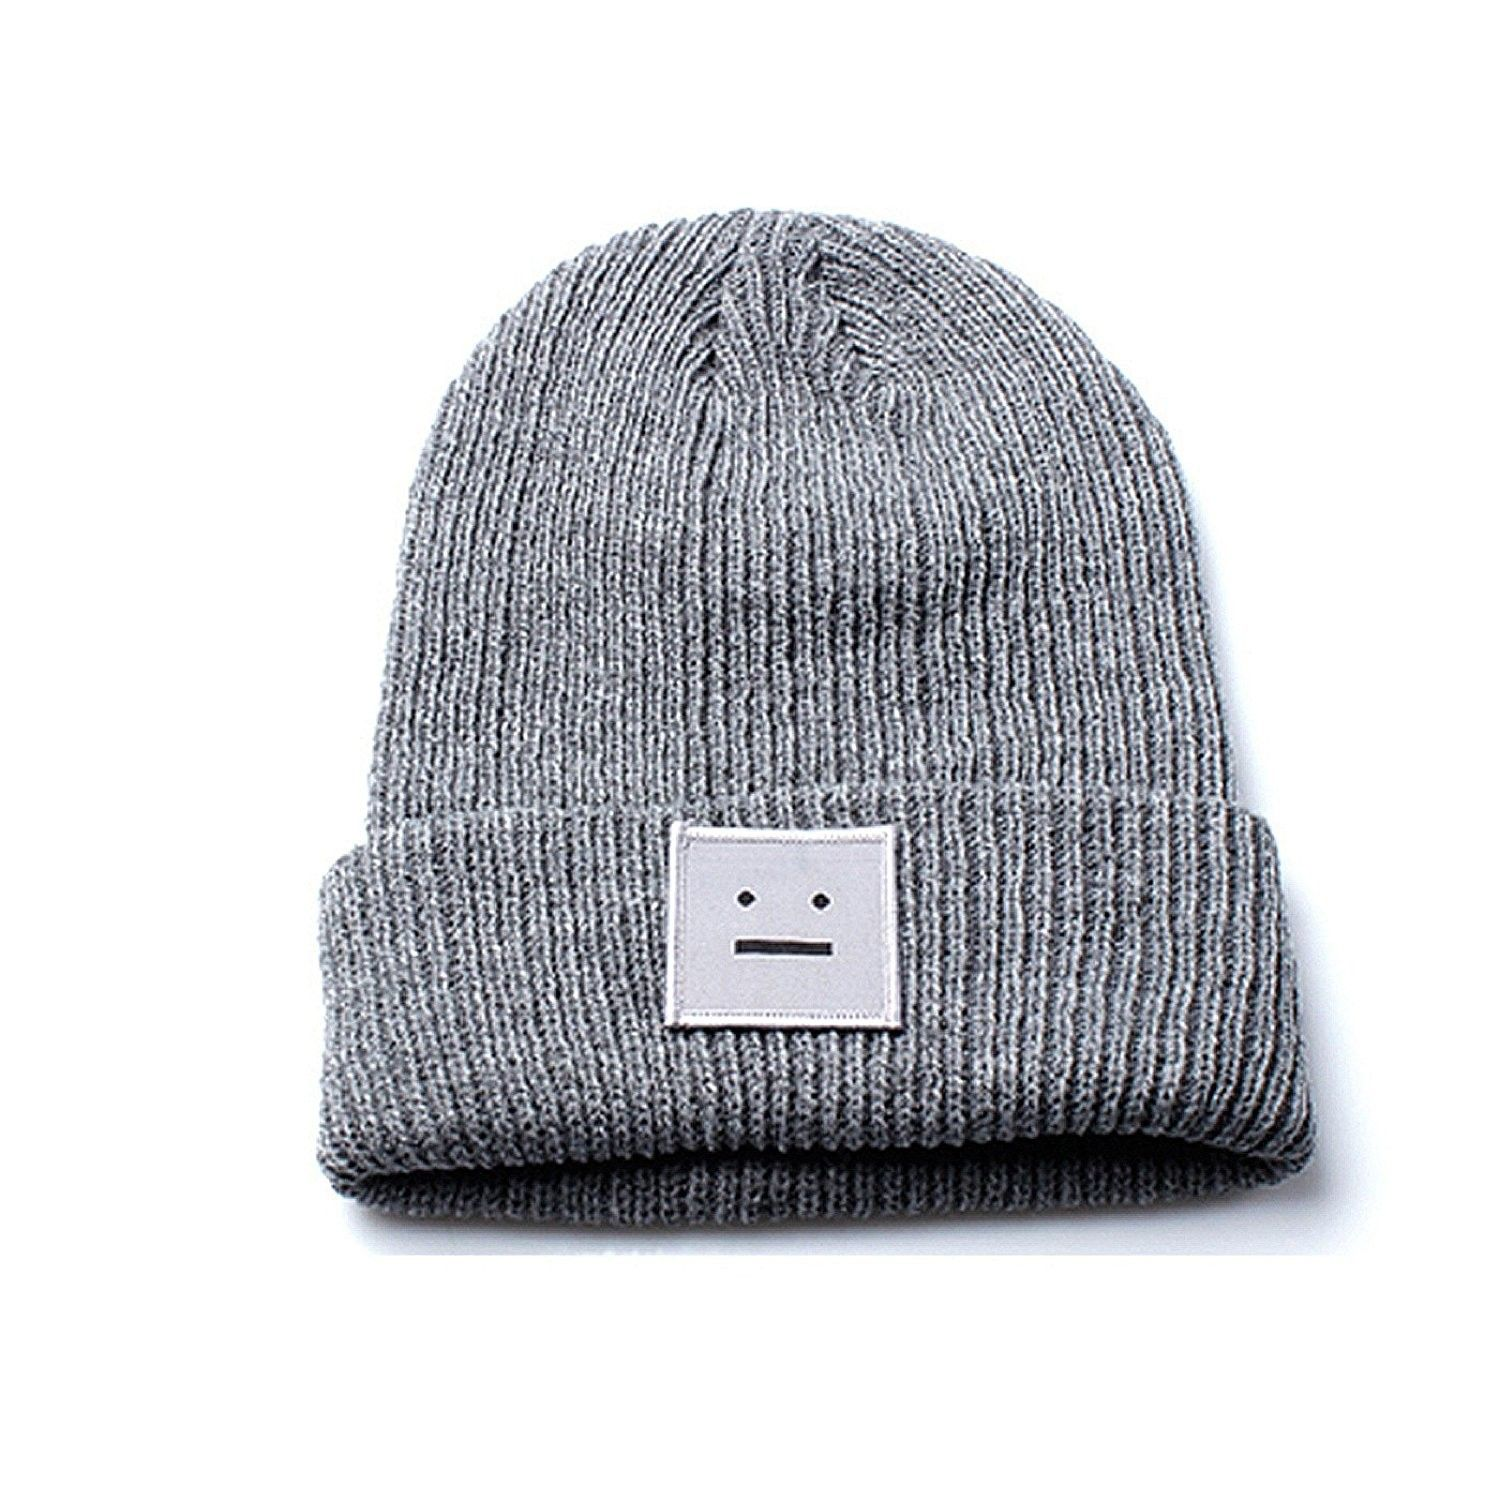 2b2fa1969cc Unisex Grey Beanie Hat with Embroidered Smiley Face Design - CG12O9YL93D -  Hats   Caps